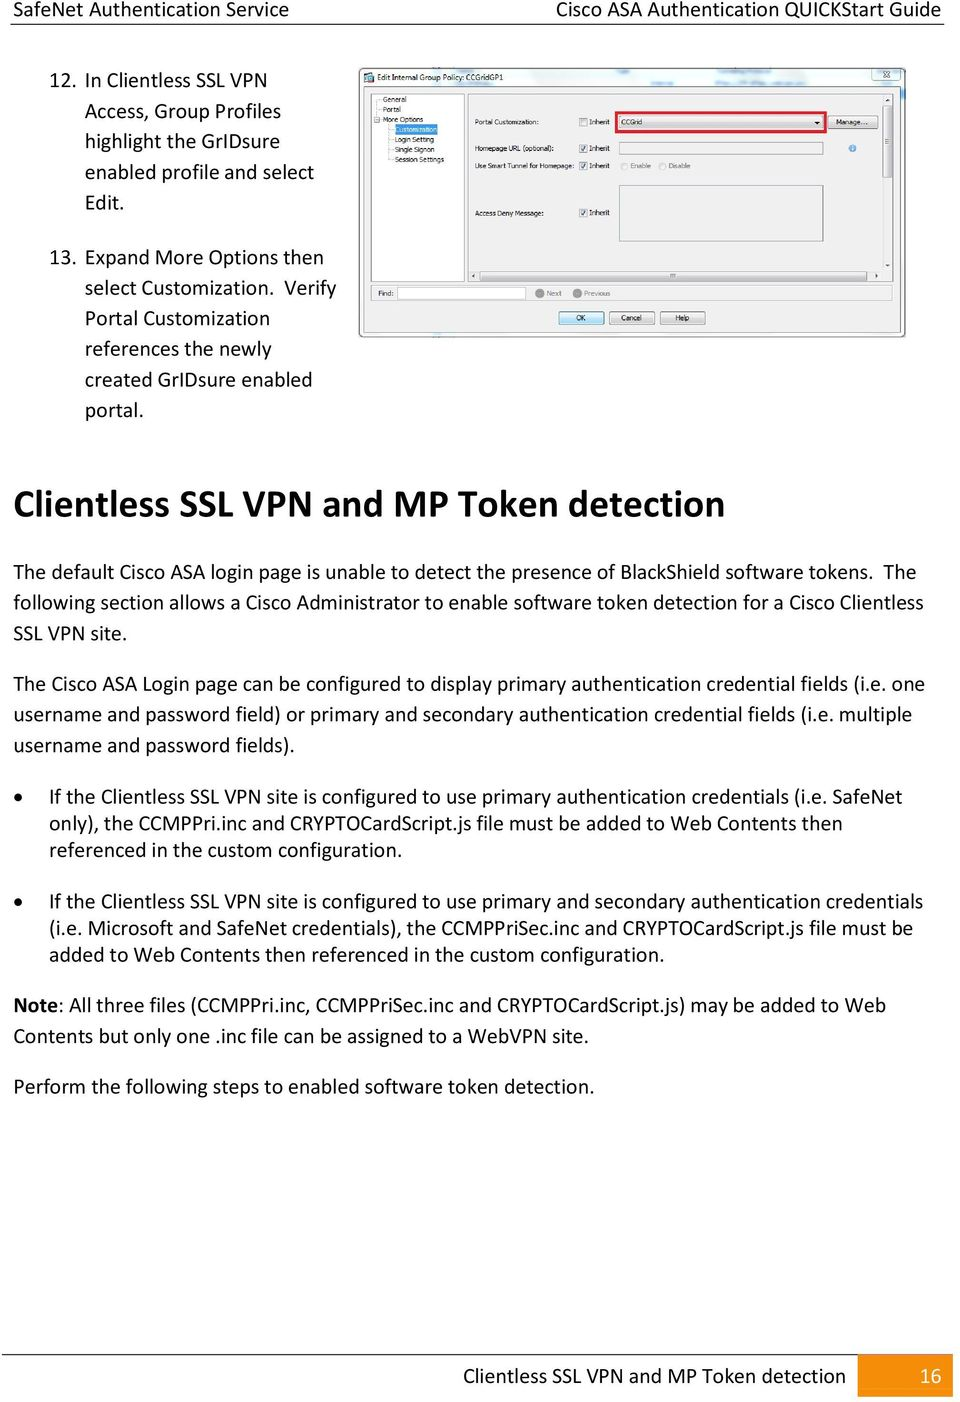 Clientless SSL VPN and MP Token detection The default Cisco ASA login page is unable to detect the presence of BlackShield software tokens.